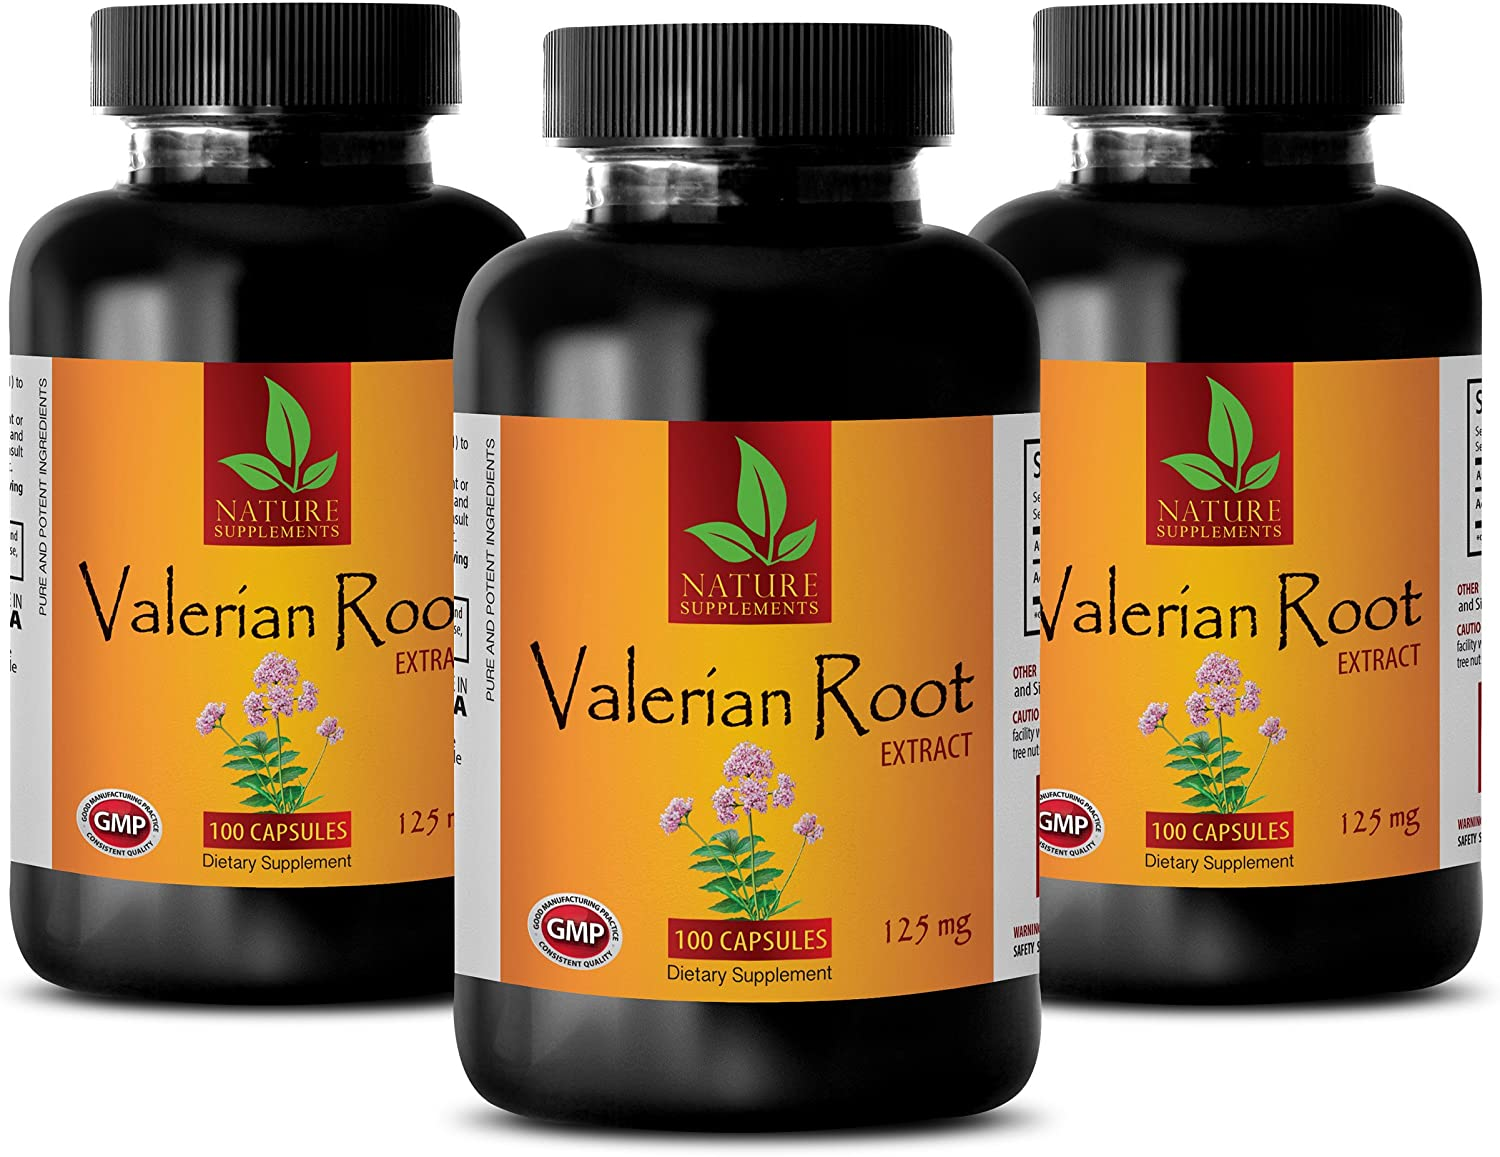 Sleeping aid Non Habit - Valerian Root Extract 125 MG - Dietary Supplement - Valerian Root Anxiety Pills - 3 Bottles (300 Capsules)